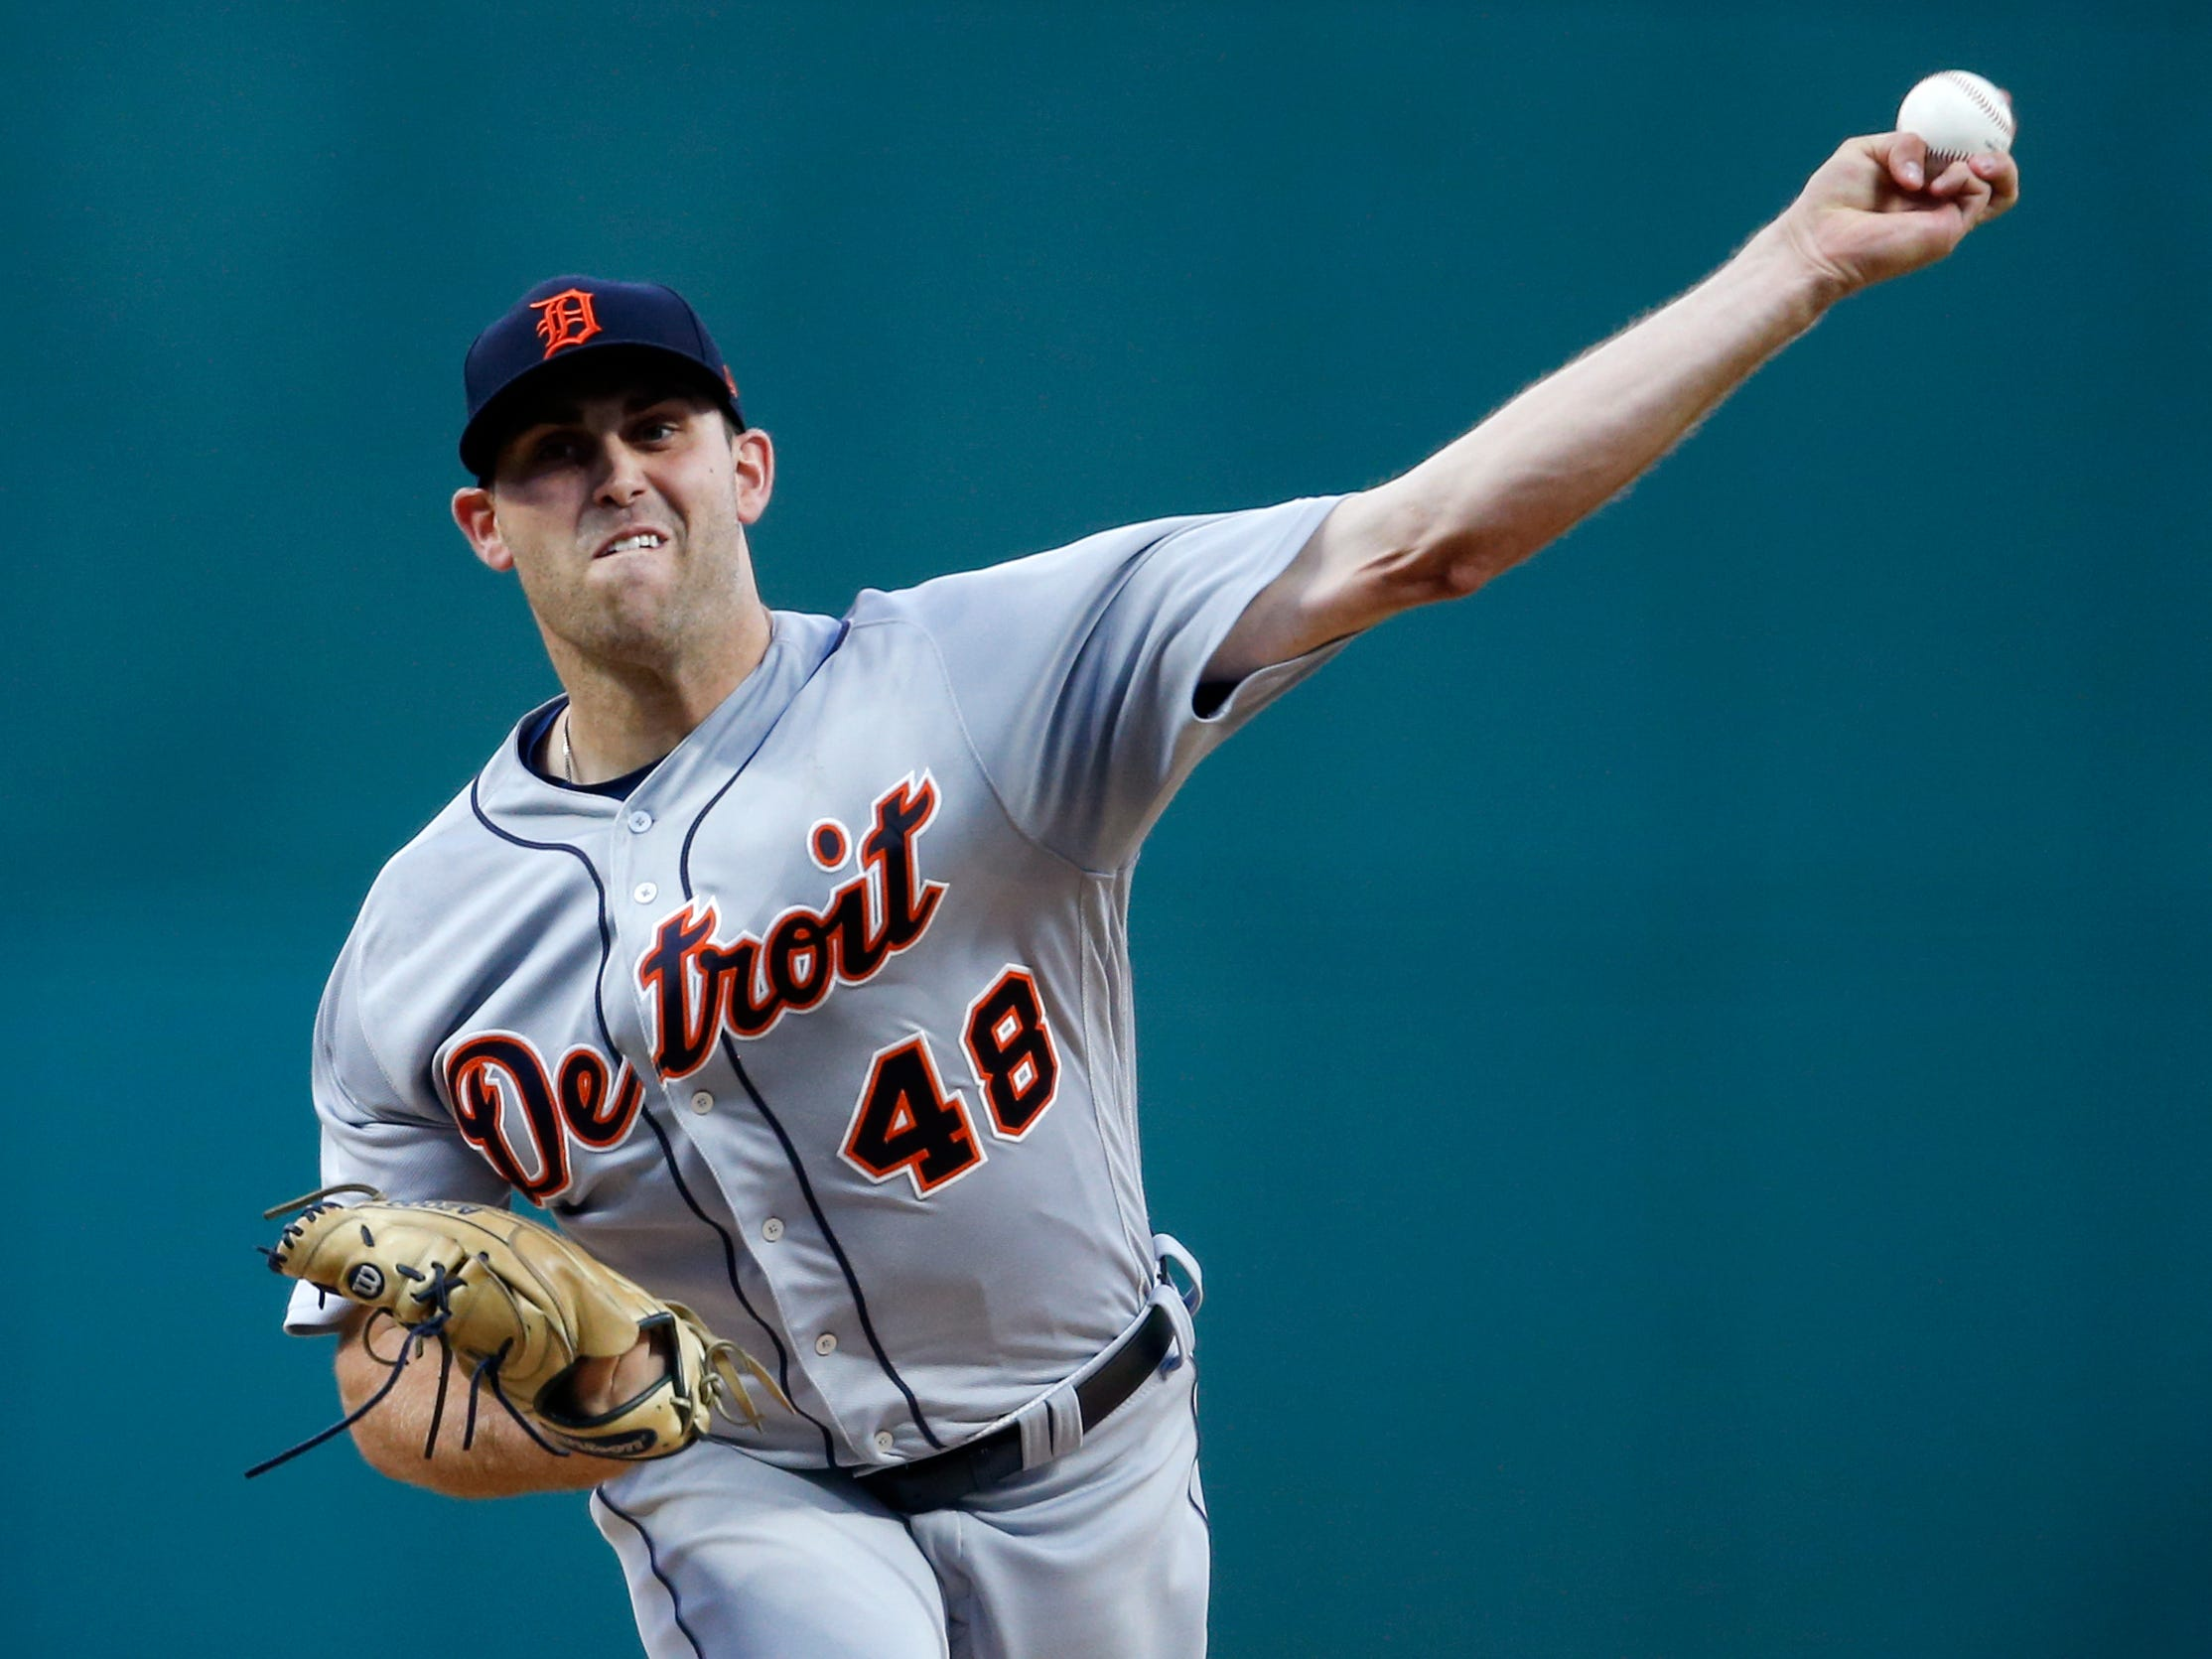 Detroit Tigers starting pitcher Matthew Boyd delivers against the Cleveland Indians during the first inning of a baseball game, Friday, Sept. 14, 2018, in Cleveland.